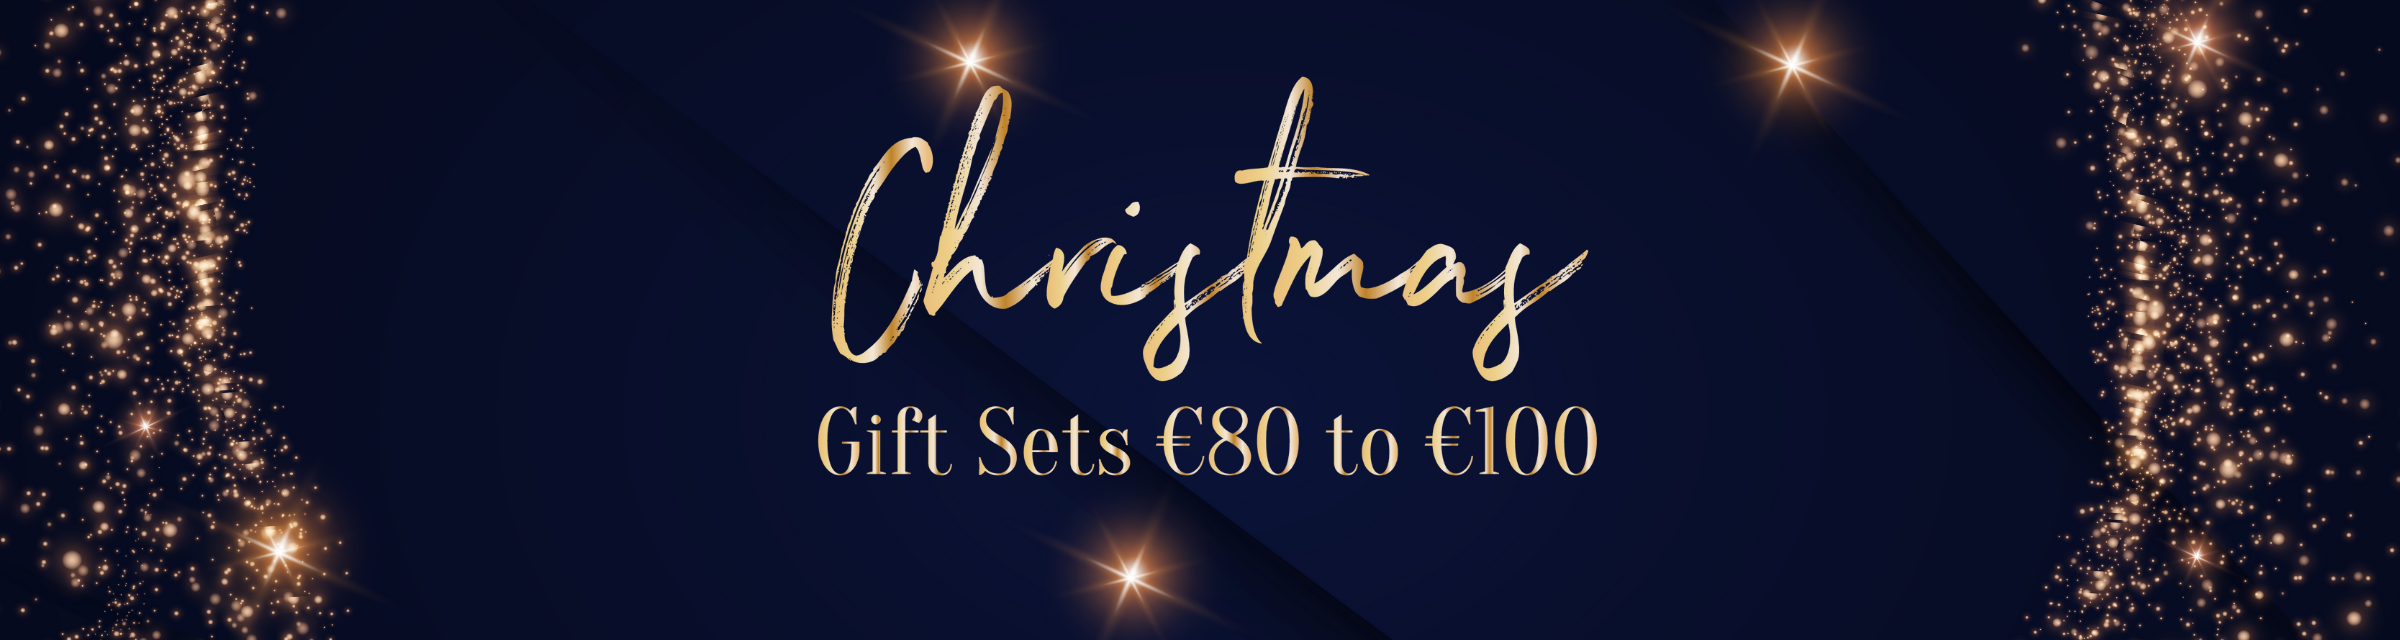 Gift Sets €80 to €100